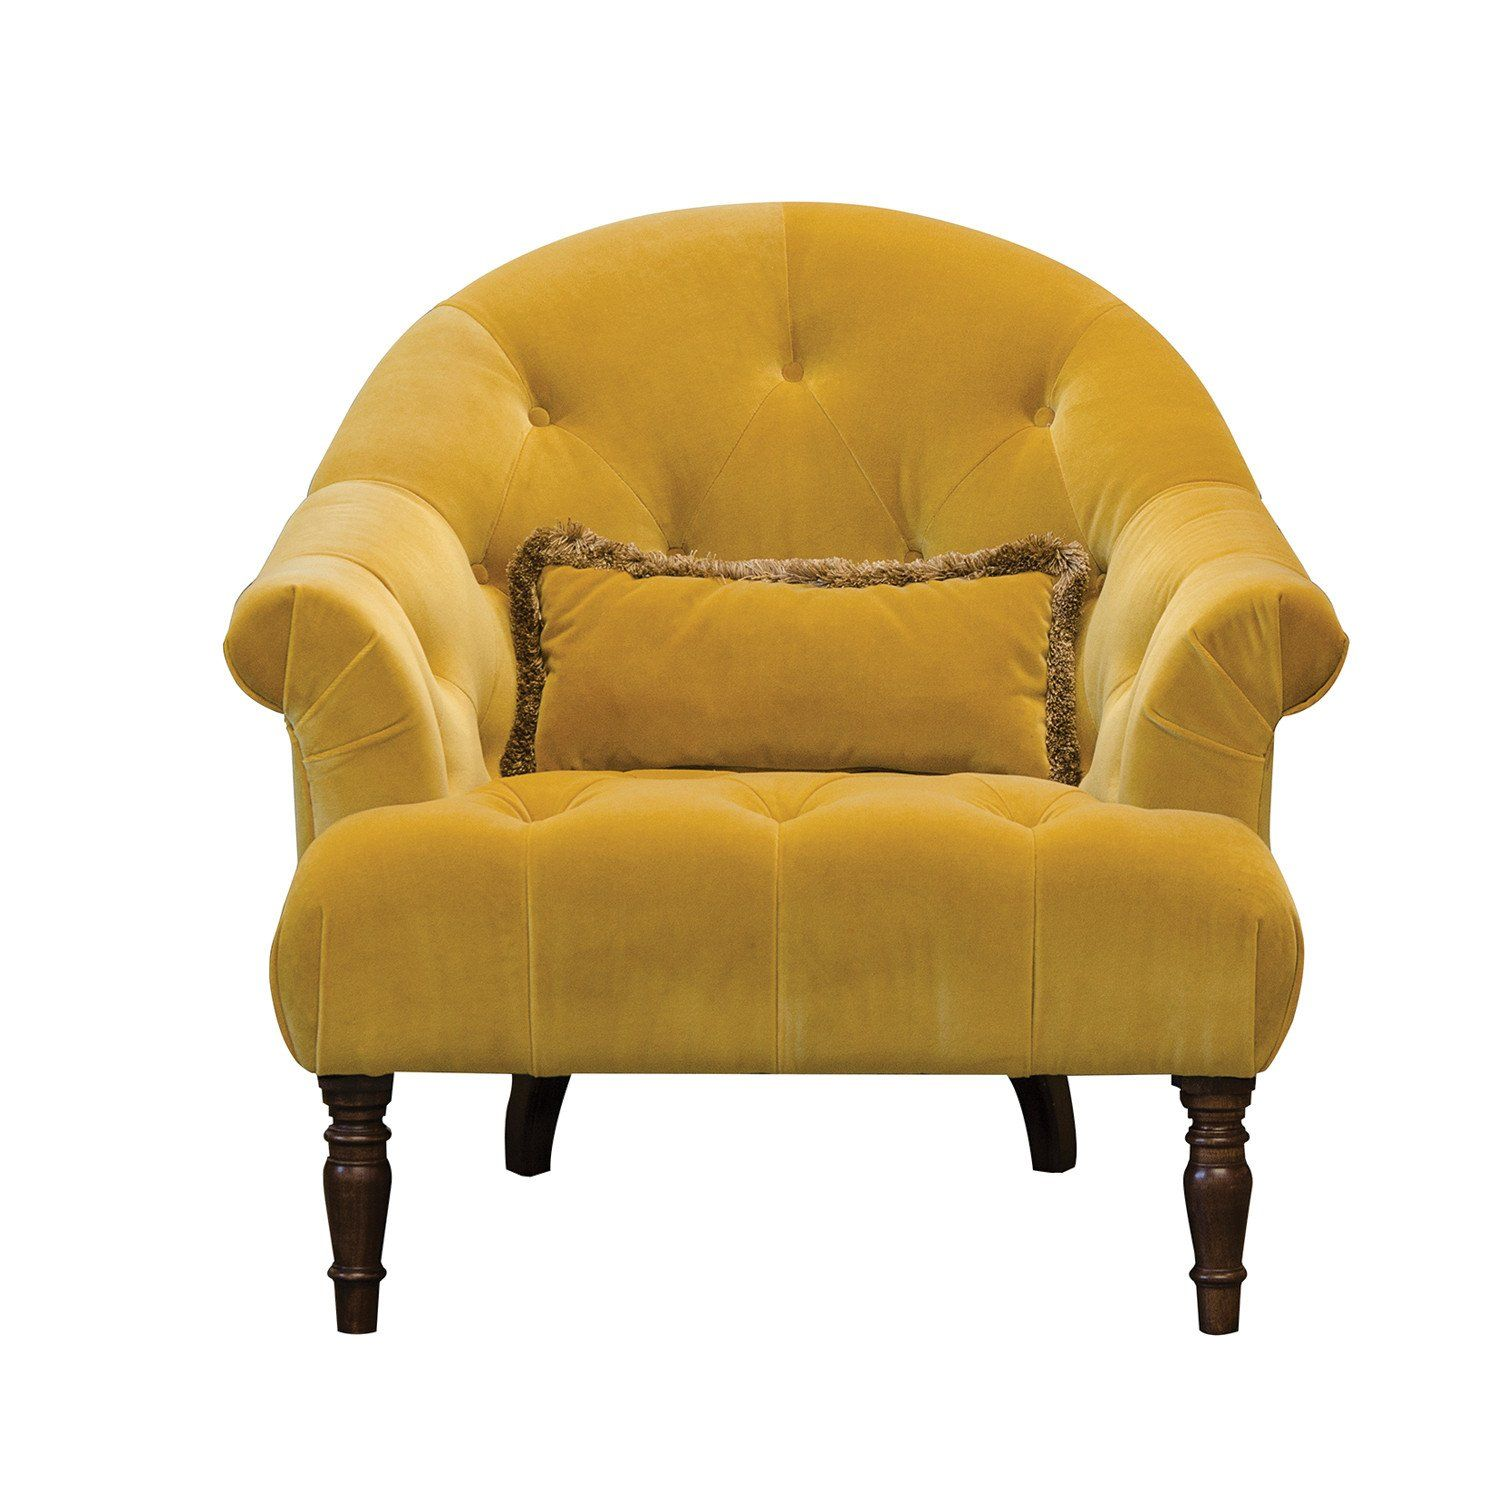 Fitzrovia Accent Chair Accent chairs, Chair, Furniture